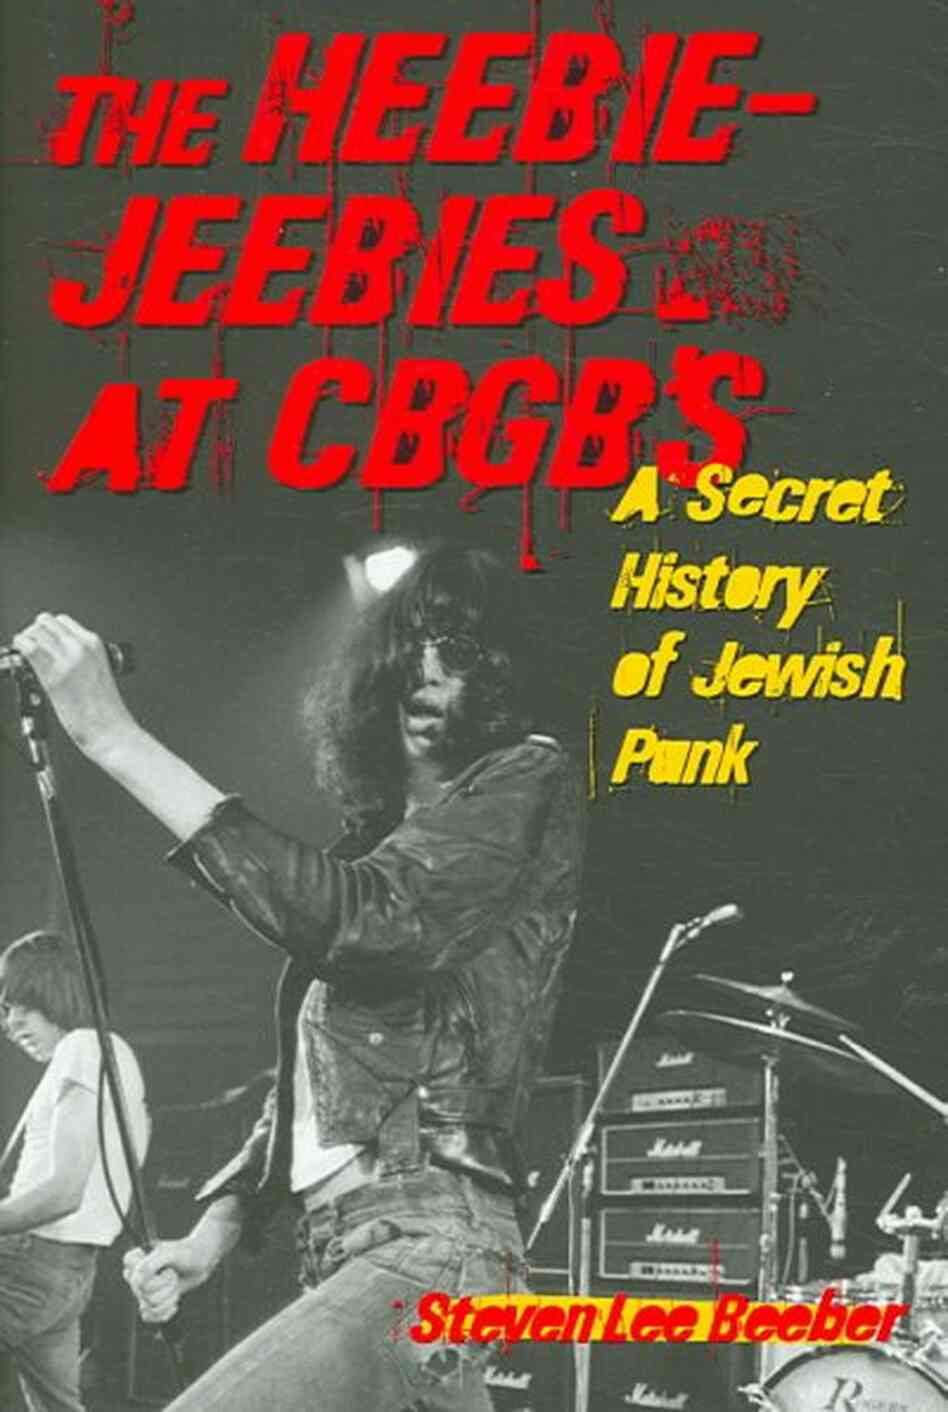 The Heebie-jeebies at Cbgb's